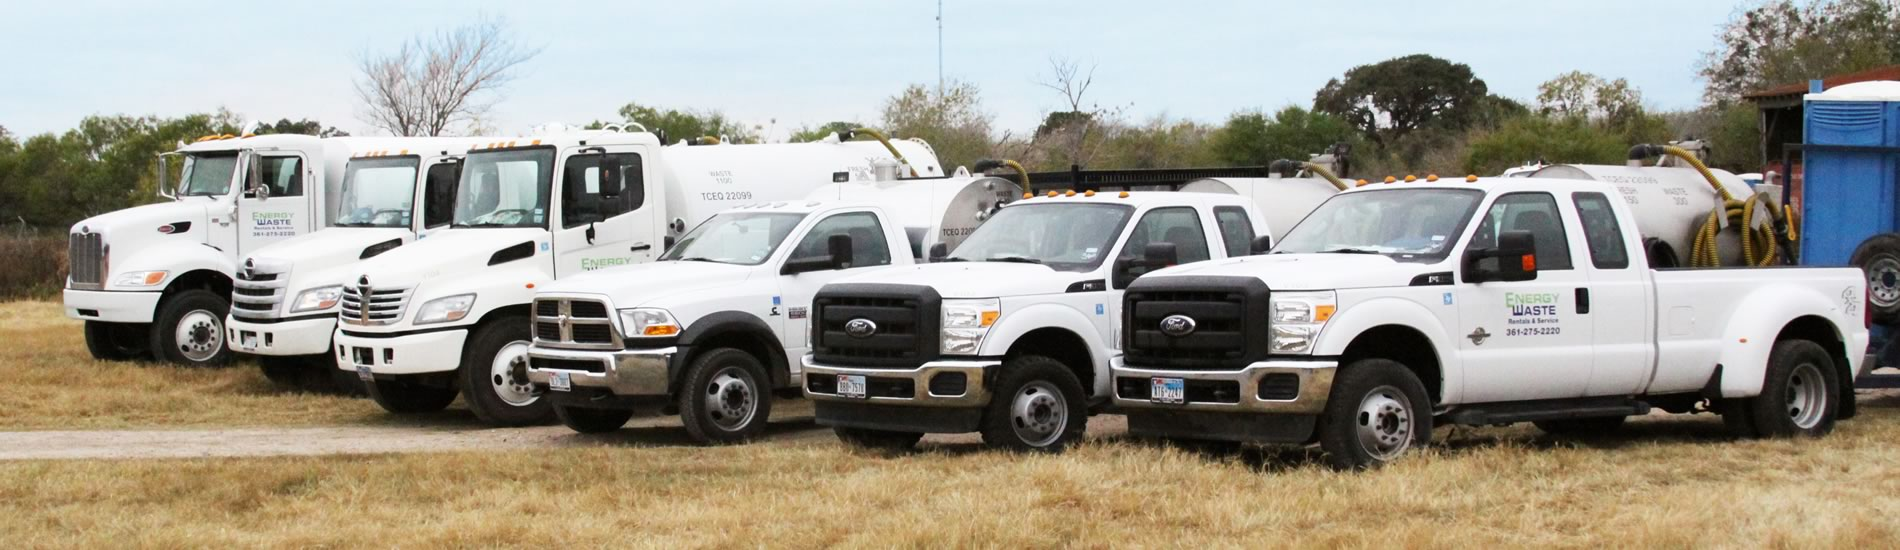 Our Fleet is always ready to roll!